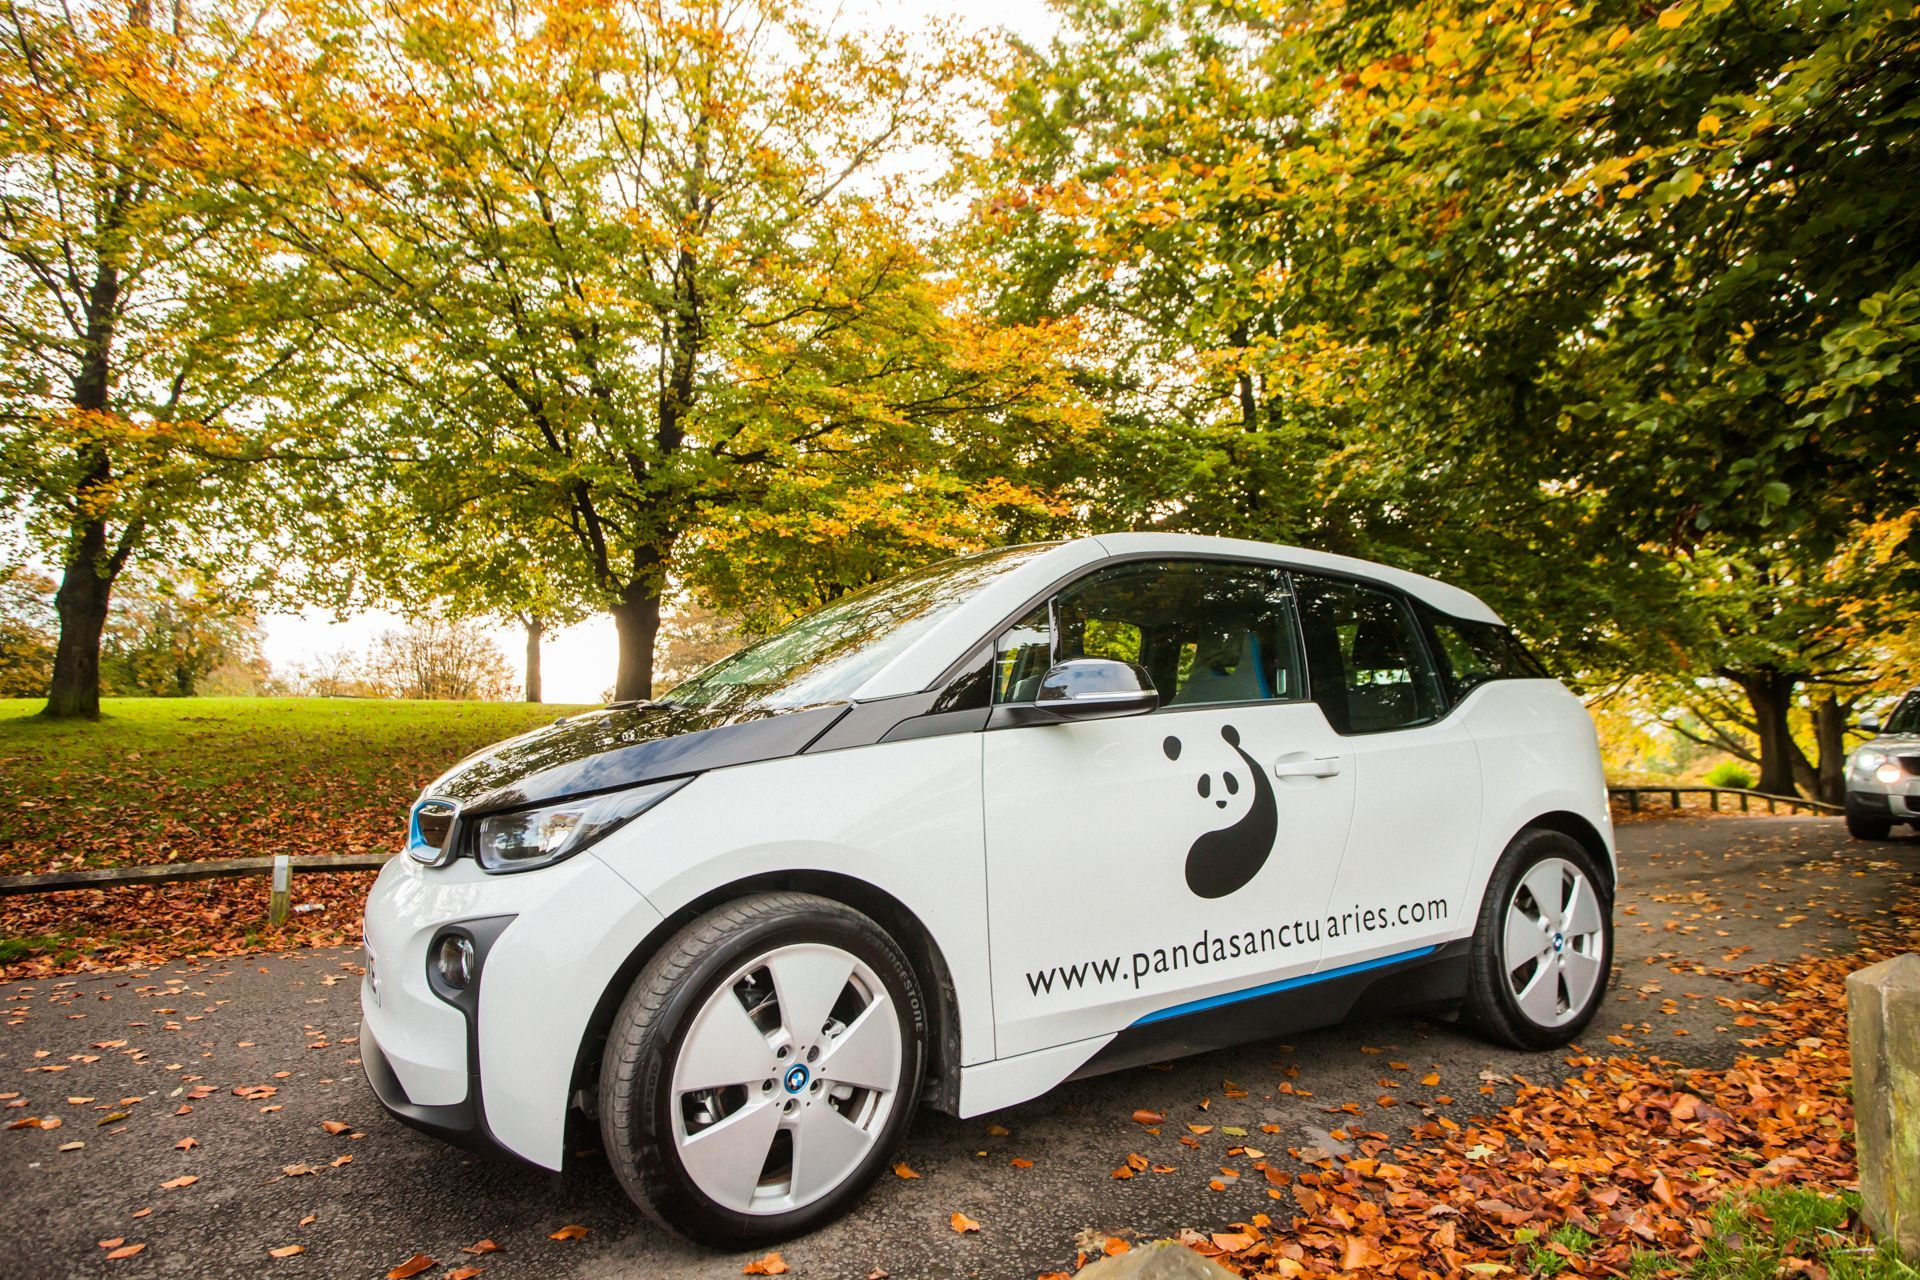 Our electric car has boosted our green credentials as an eco-friendly accommodation provider.